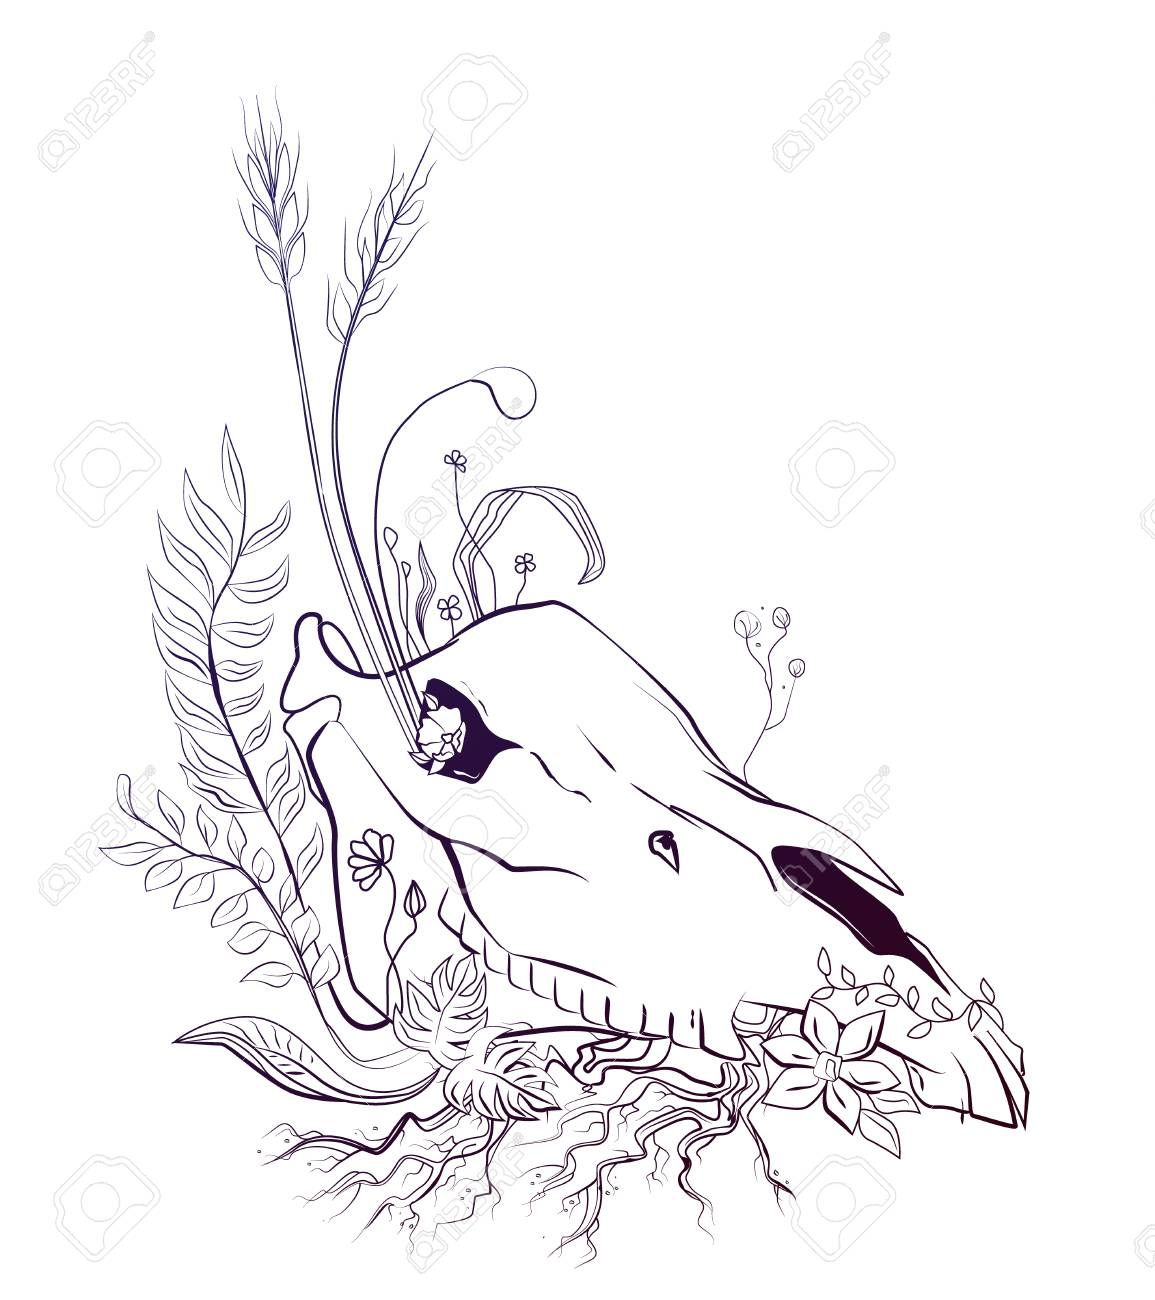 1155x1300 Life And Death Symbolic Graphic Composition With Horse Skull